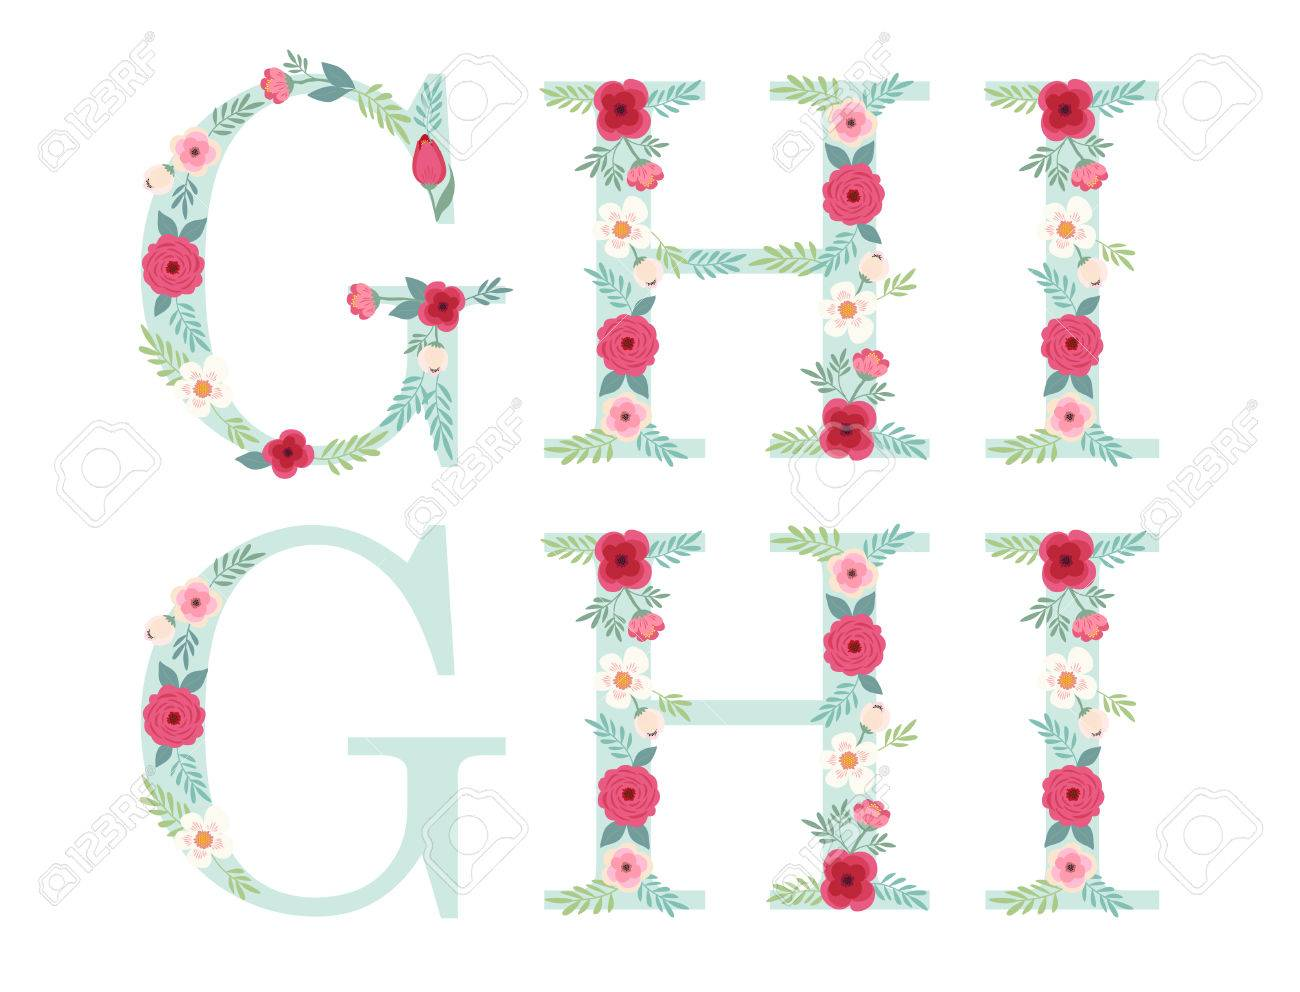 Cute Vintage Alphabet Letters With Hand Drawn Rustic Flowers Stock Vector